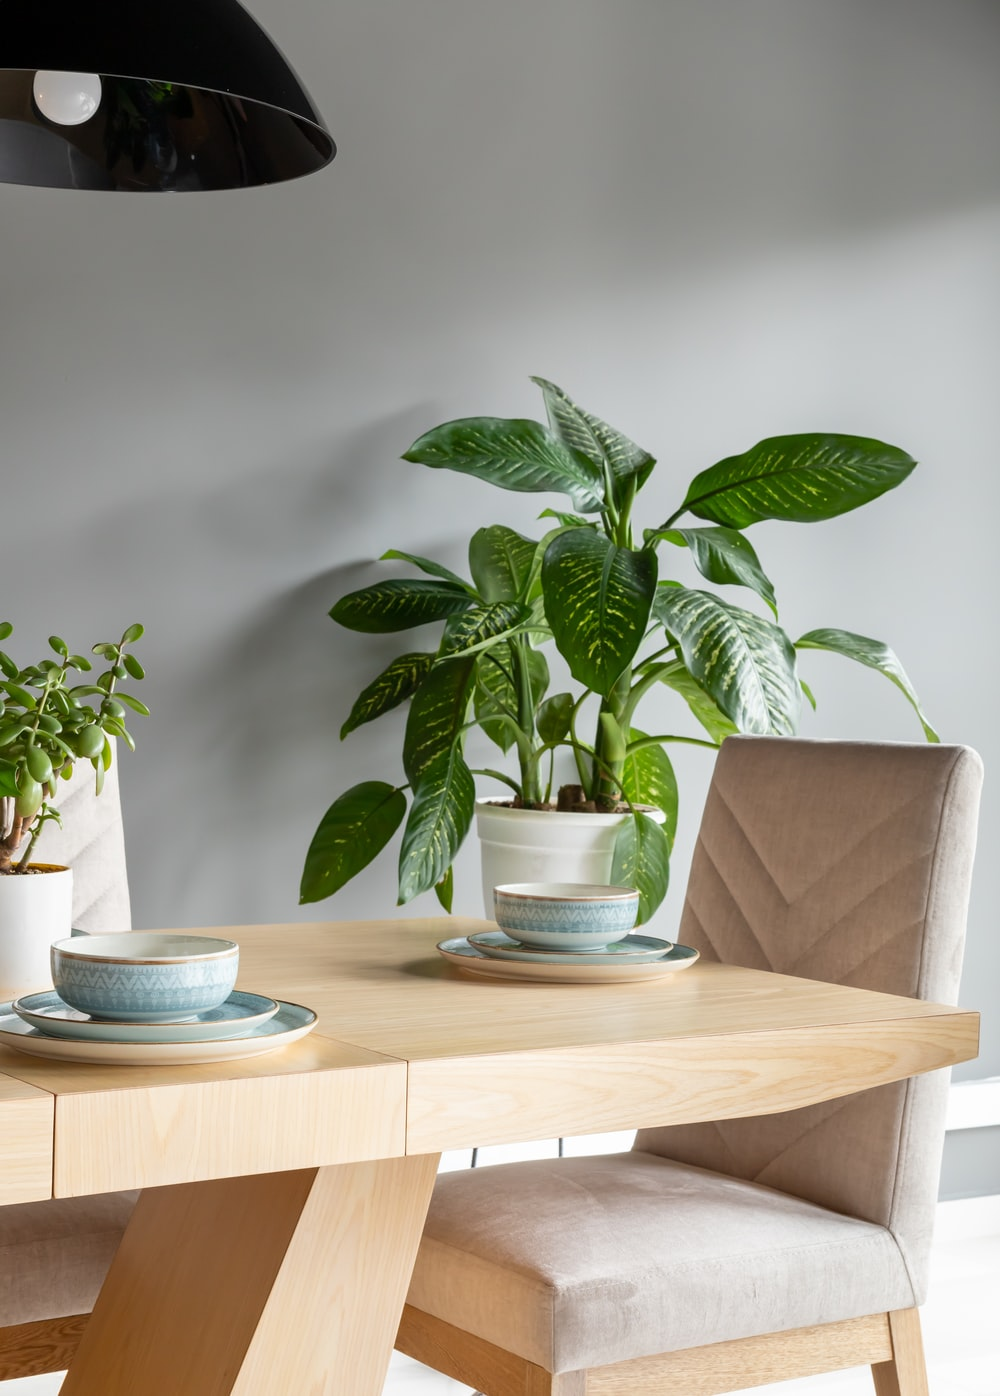 green plant on white ceramic bowl on brown wooden table